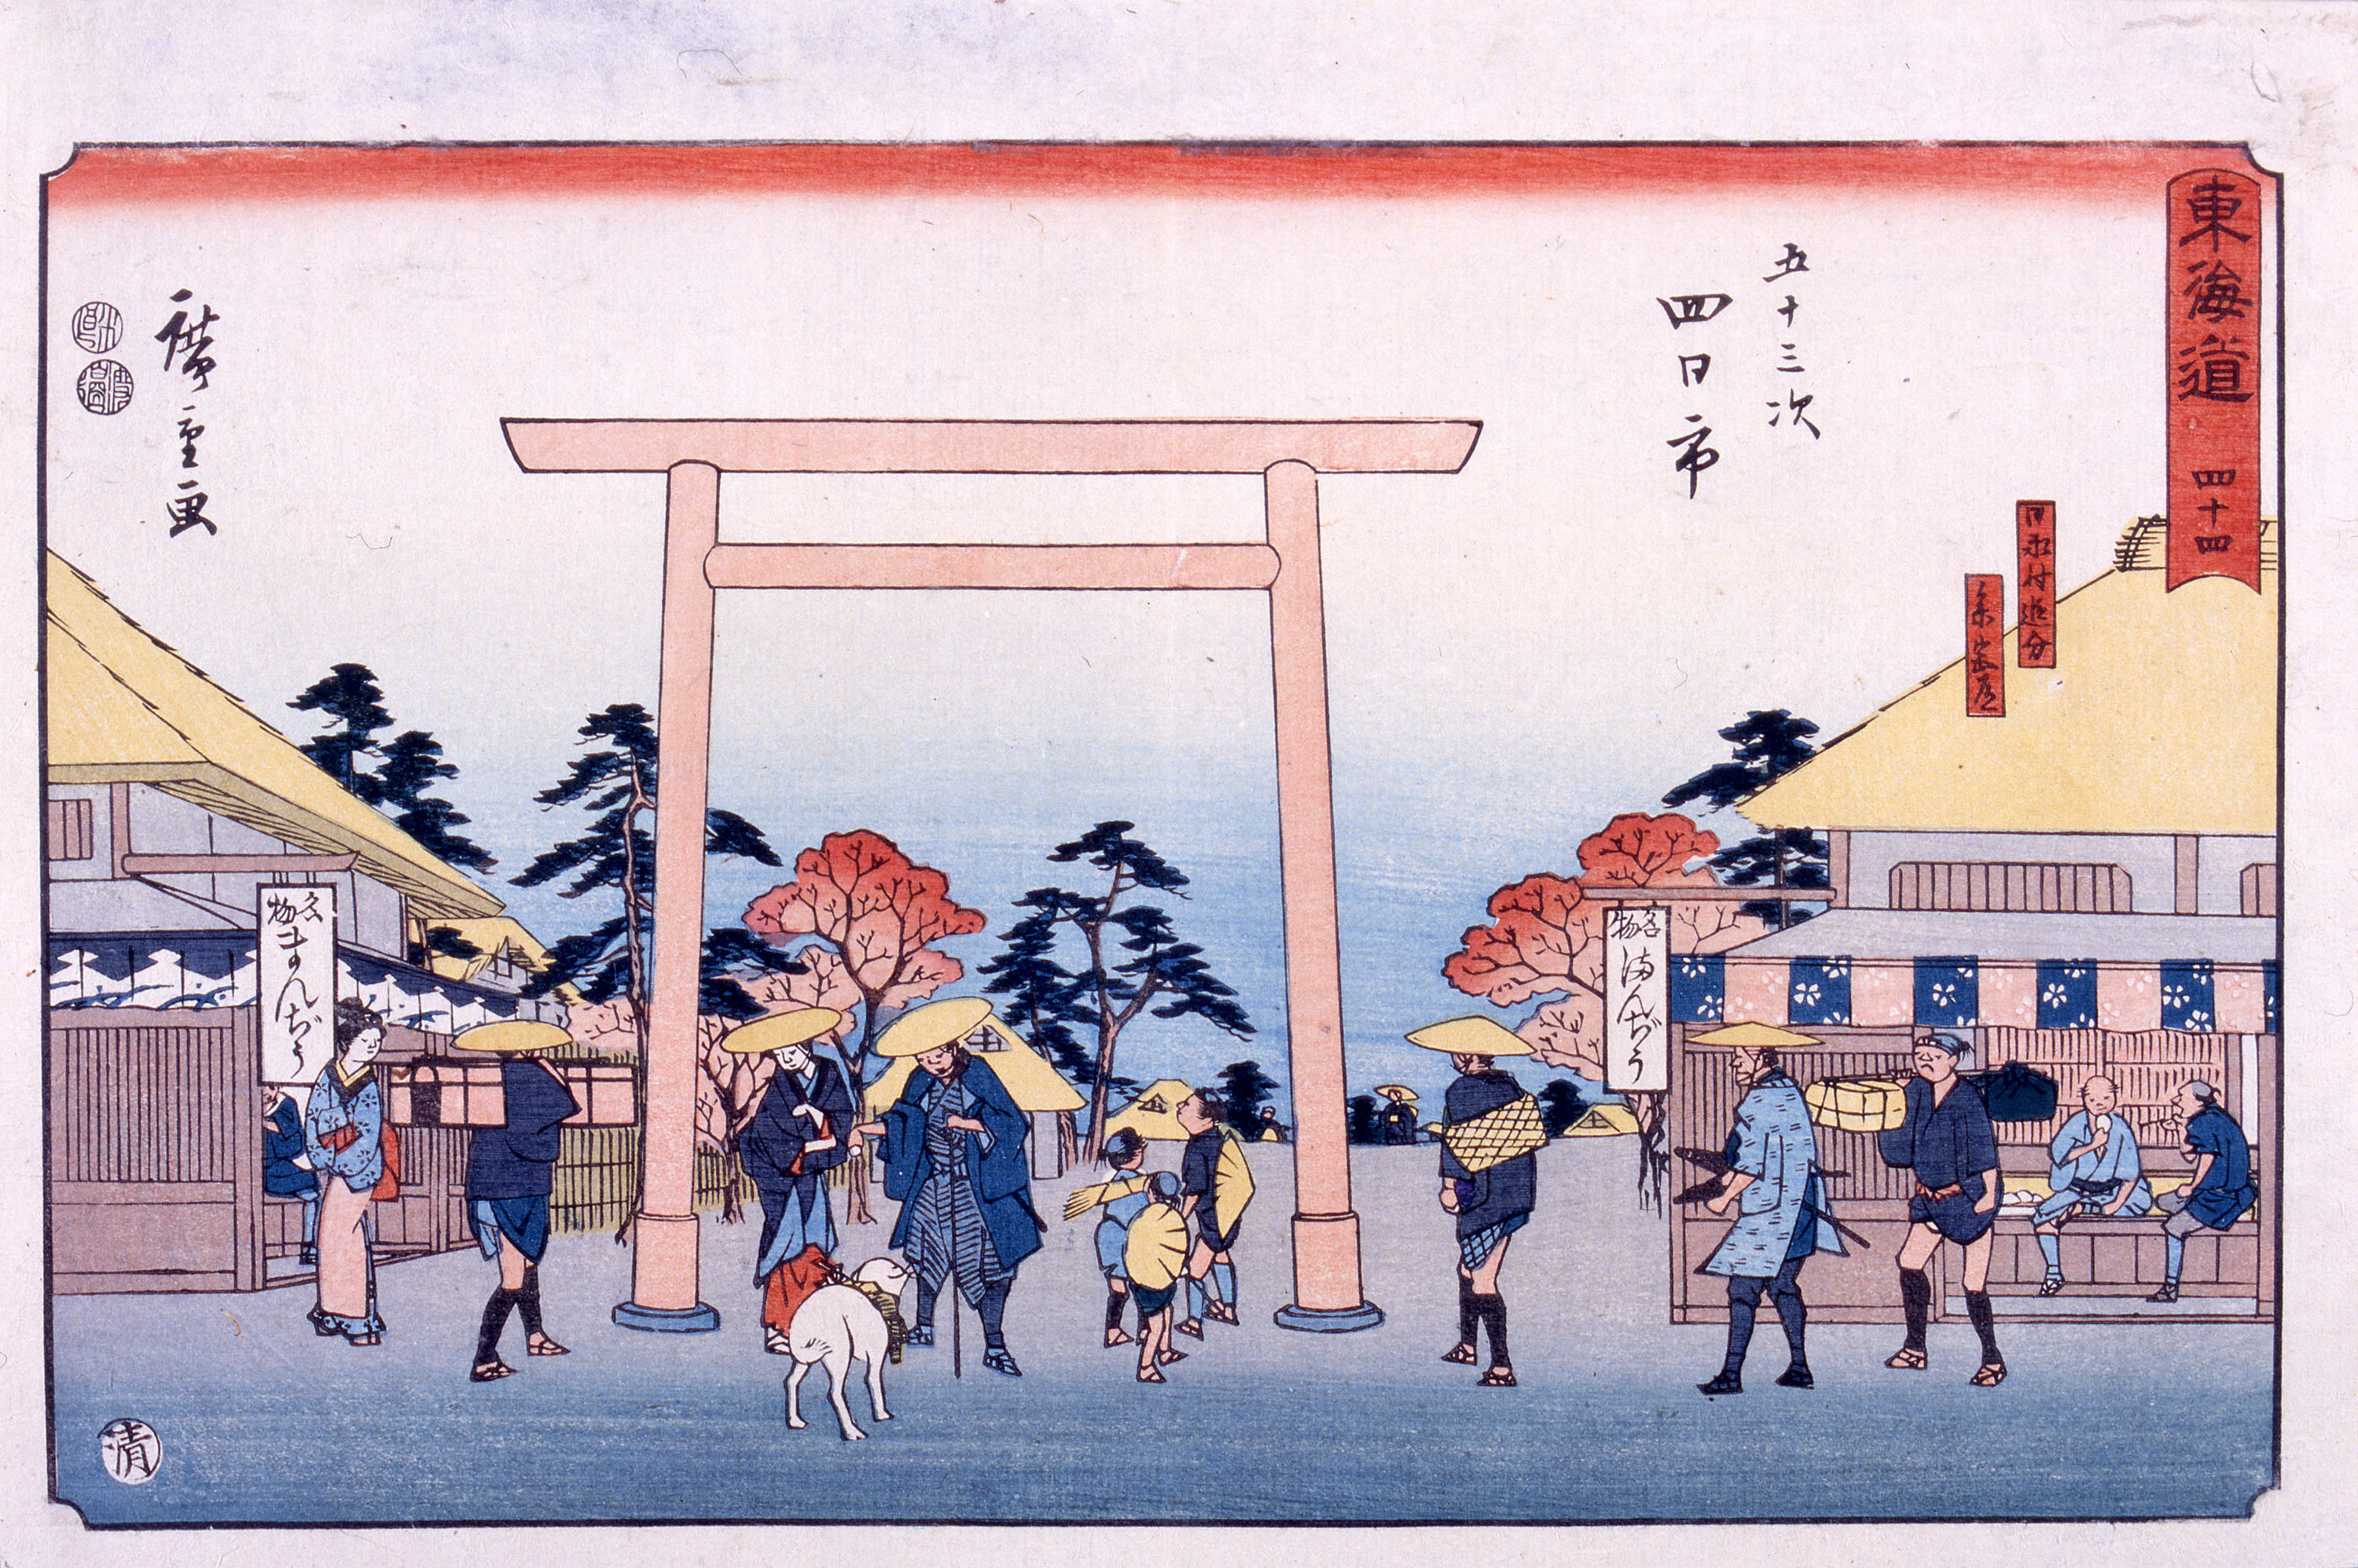 'A Road Traveled by Feudal Lords and Pet Dogs: Hiroshige's Fifty-three Stations of the Tokaido, Primarily from the Hoeido and Reisho Editions'